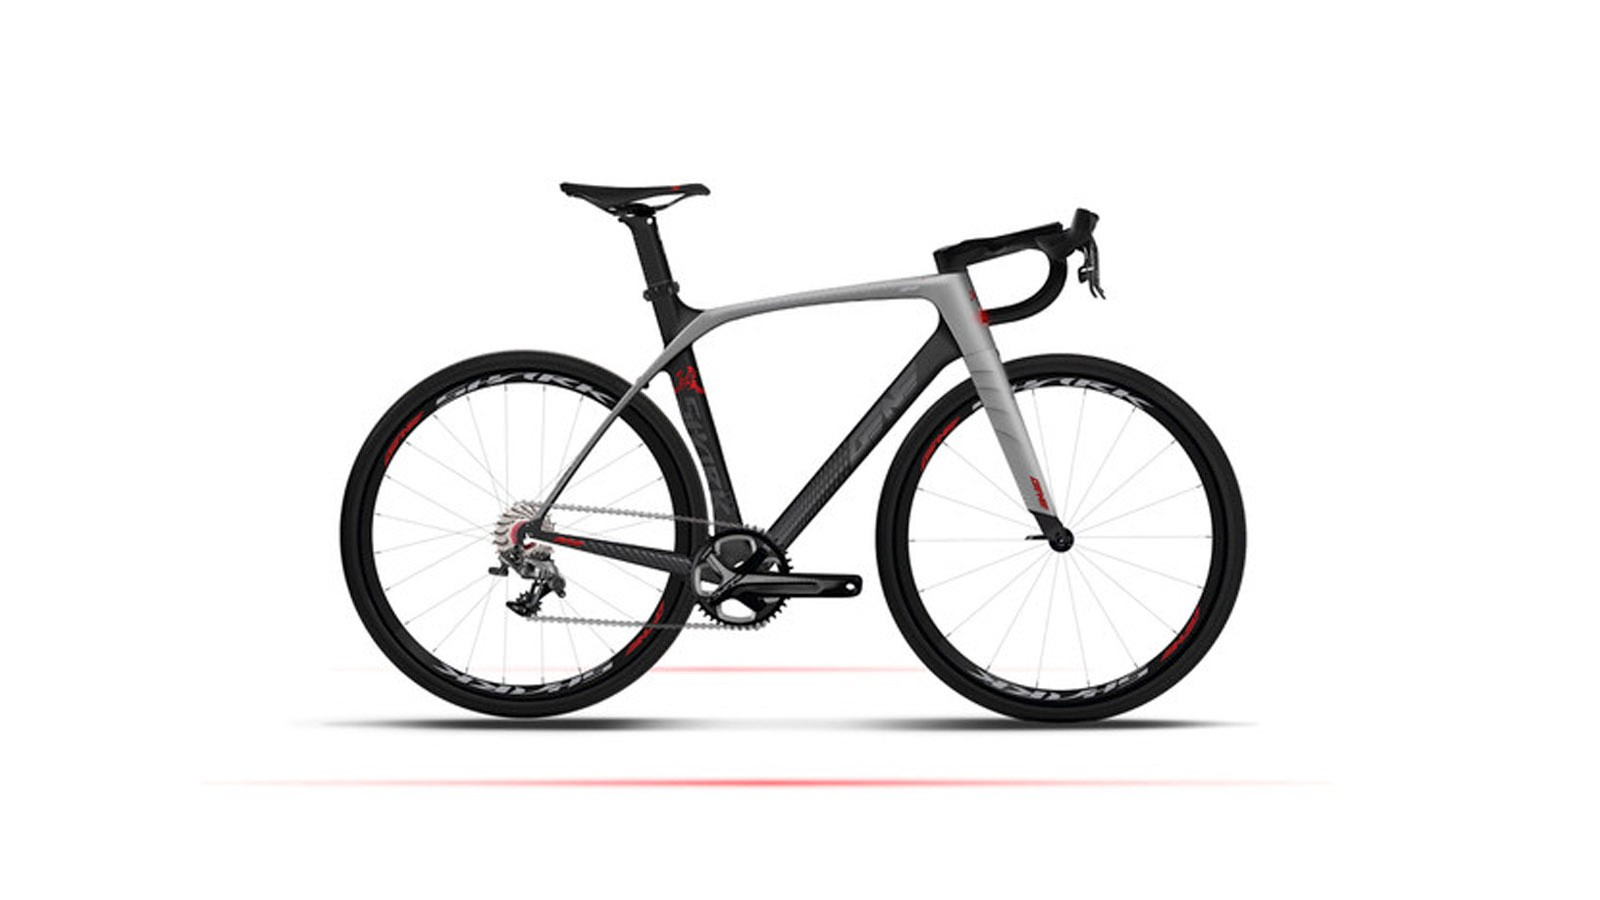 The Smart Road Bike sees a full carbon frame and finishing kit, 1x11 drivetrain and integrated 'BikeOS'